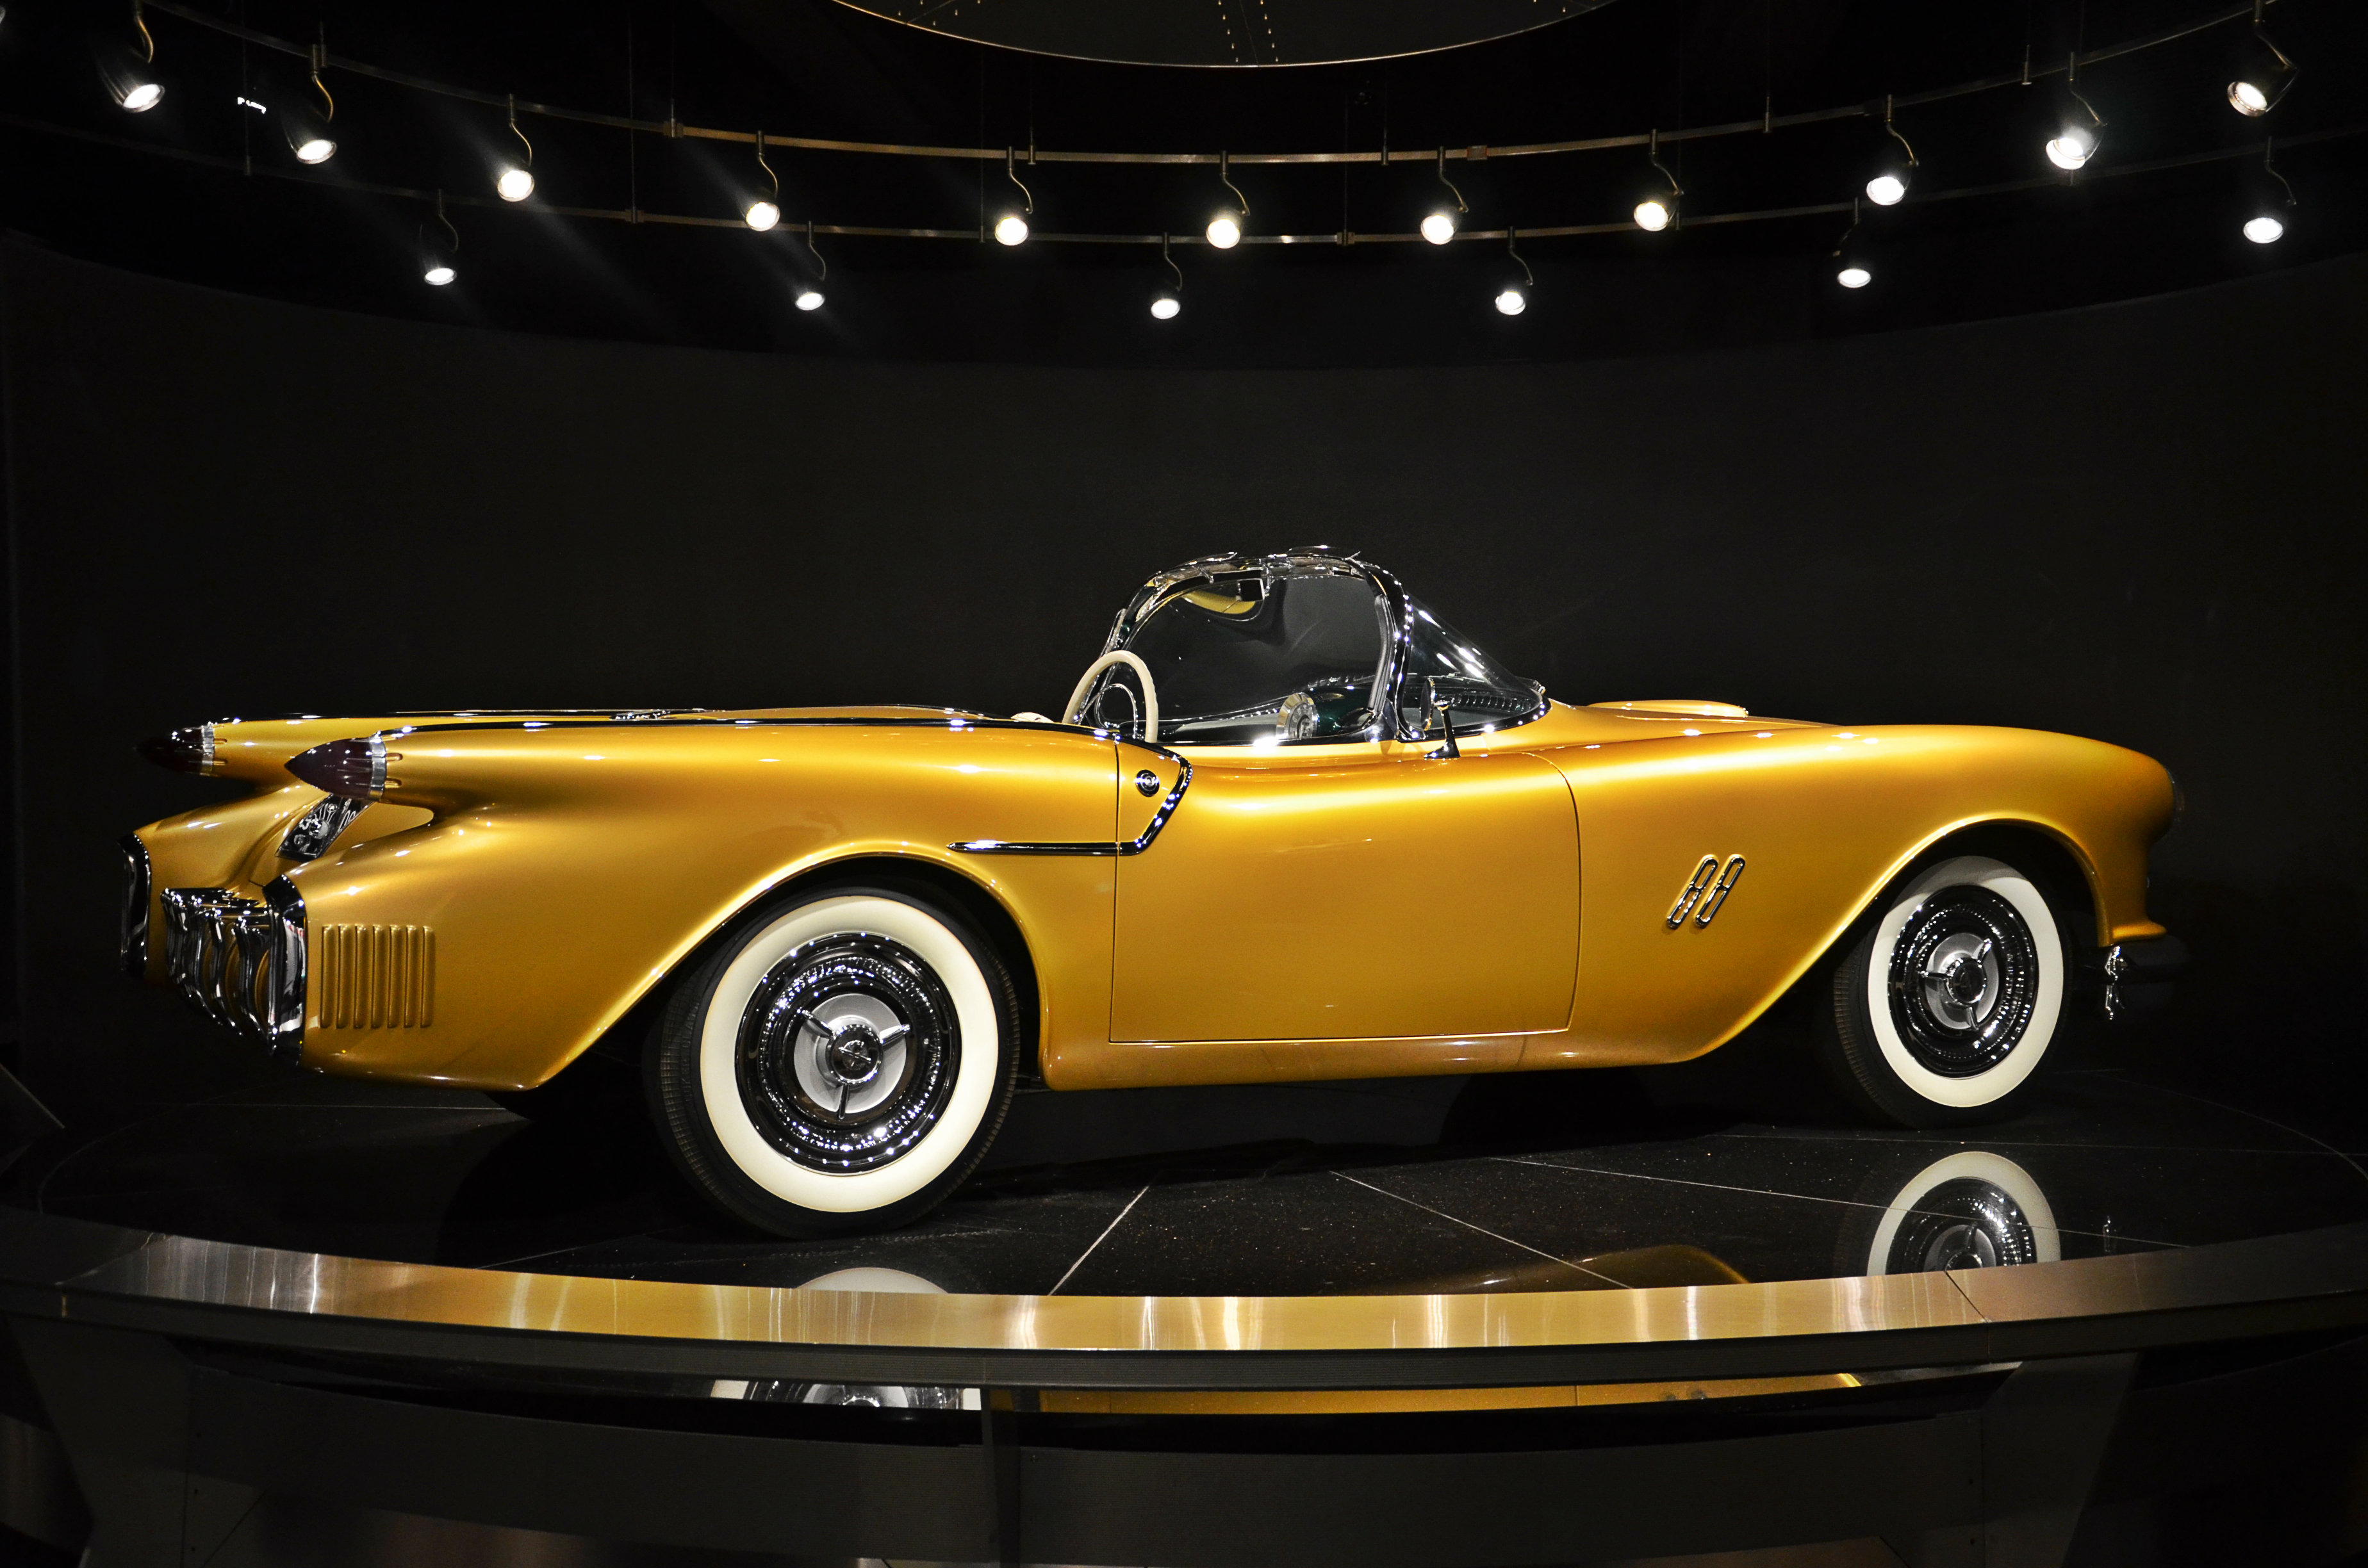 World Best Car Hd Wallpaper 1080p 1954 Oldsmobile F 88 Wallpapers High Quality Download Free